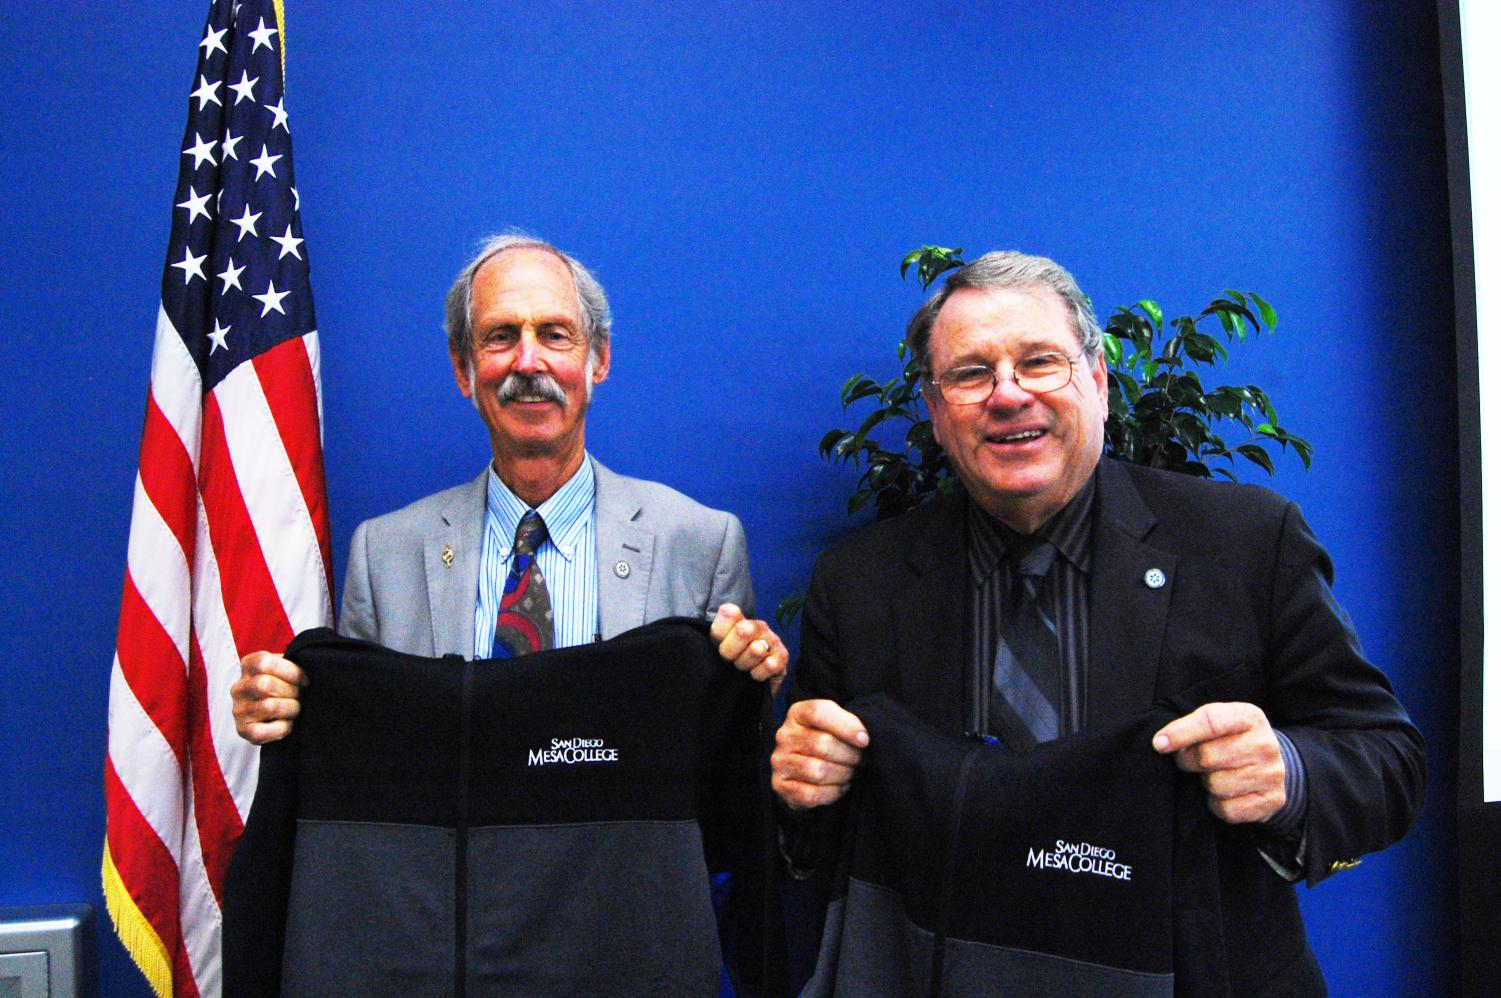 Rich Grosch (right) and Peter Zschiesche (left) were gifted Mesa College hoodies by Mesa faculty at the Nov. 8 Board of Trustees meeting, commemorating the trustees' contributions to the district.